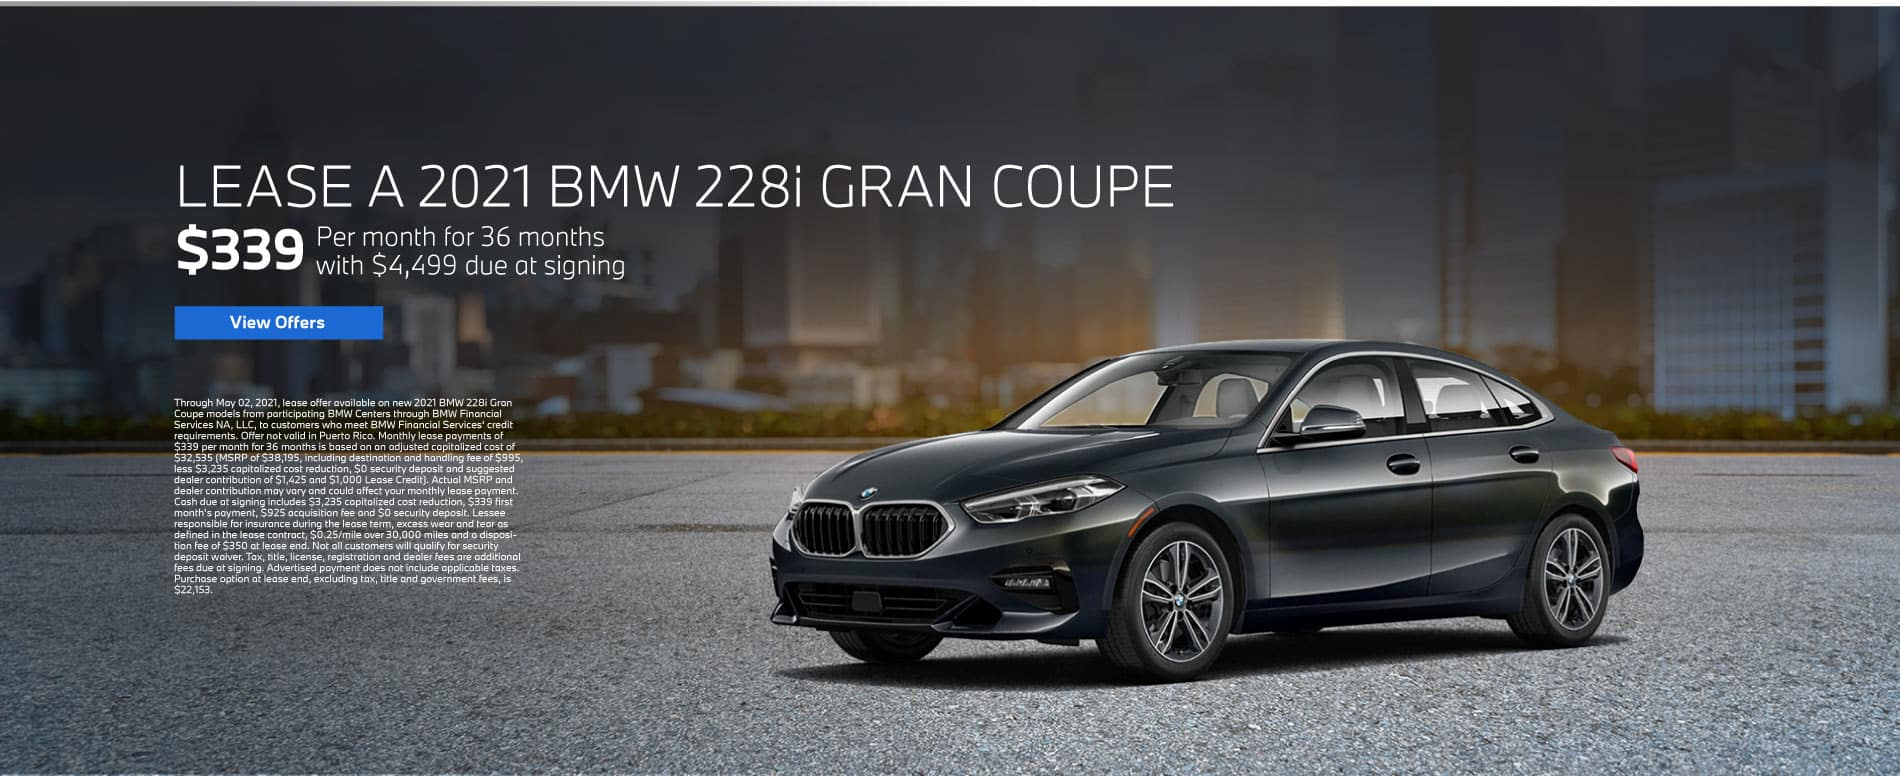 LEASE A 2021 BMW 228i GRAN COUPE $339 Per month for 36 months with $4,499 due at signing